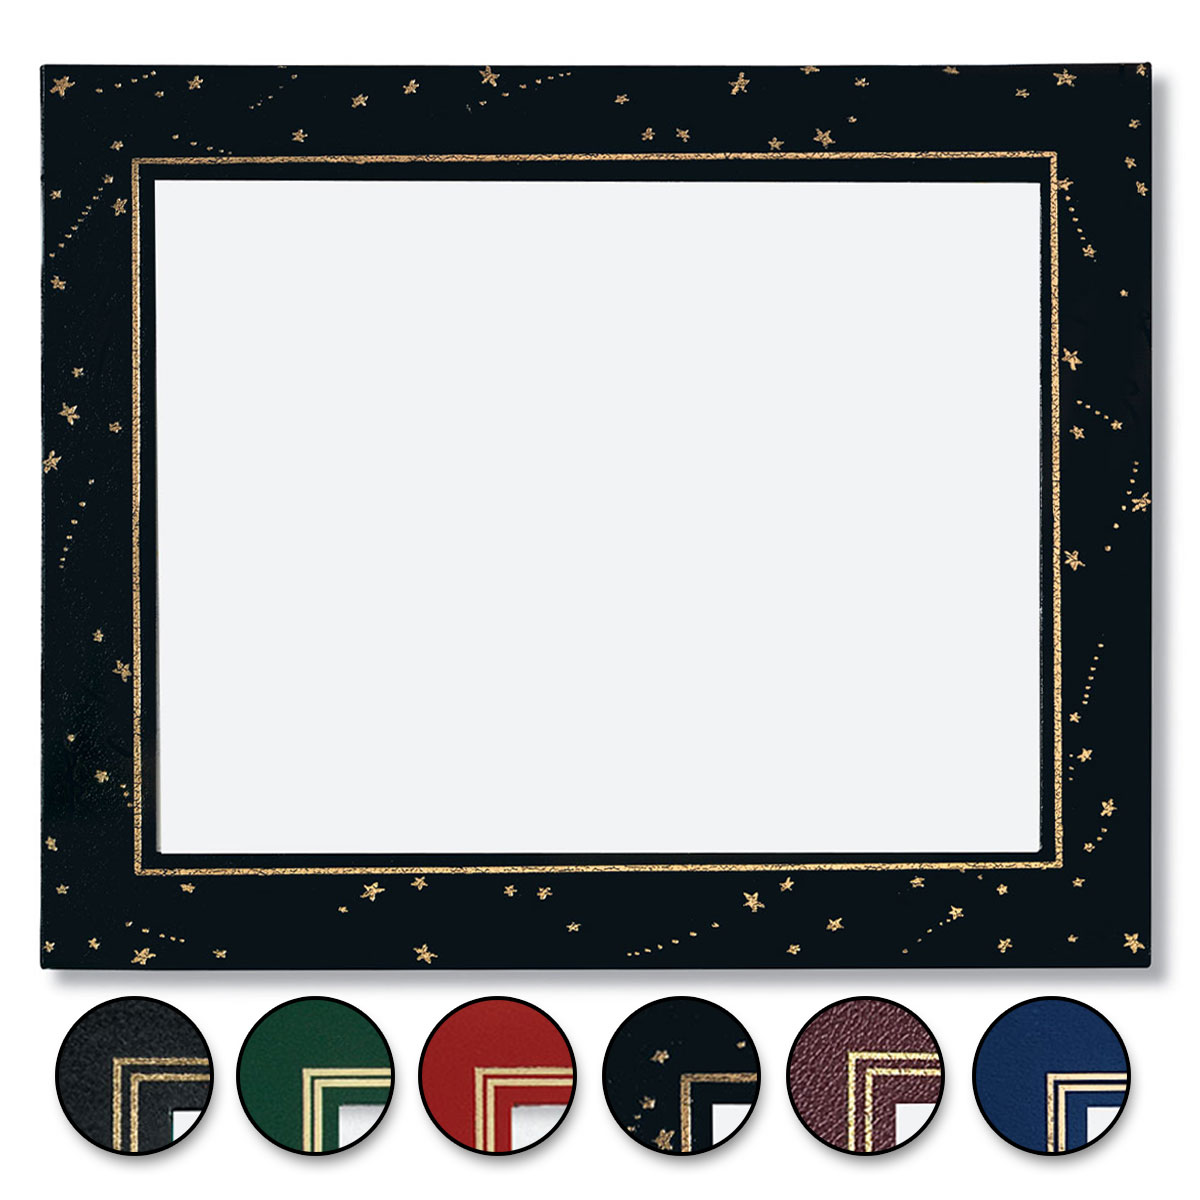 Diploma & Certificate Frames - Wood, Glass, & Leather | PaperDirect\'s